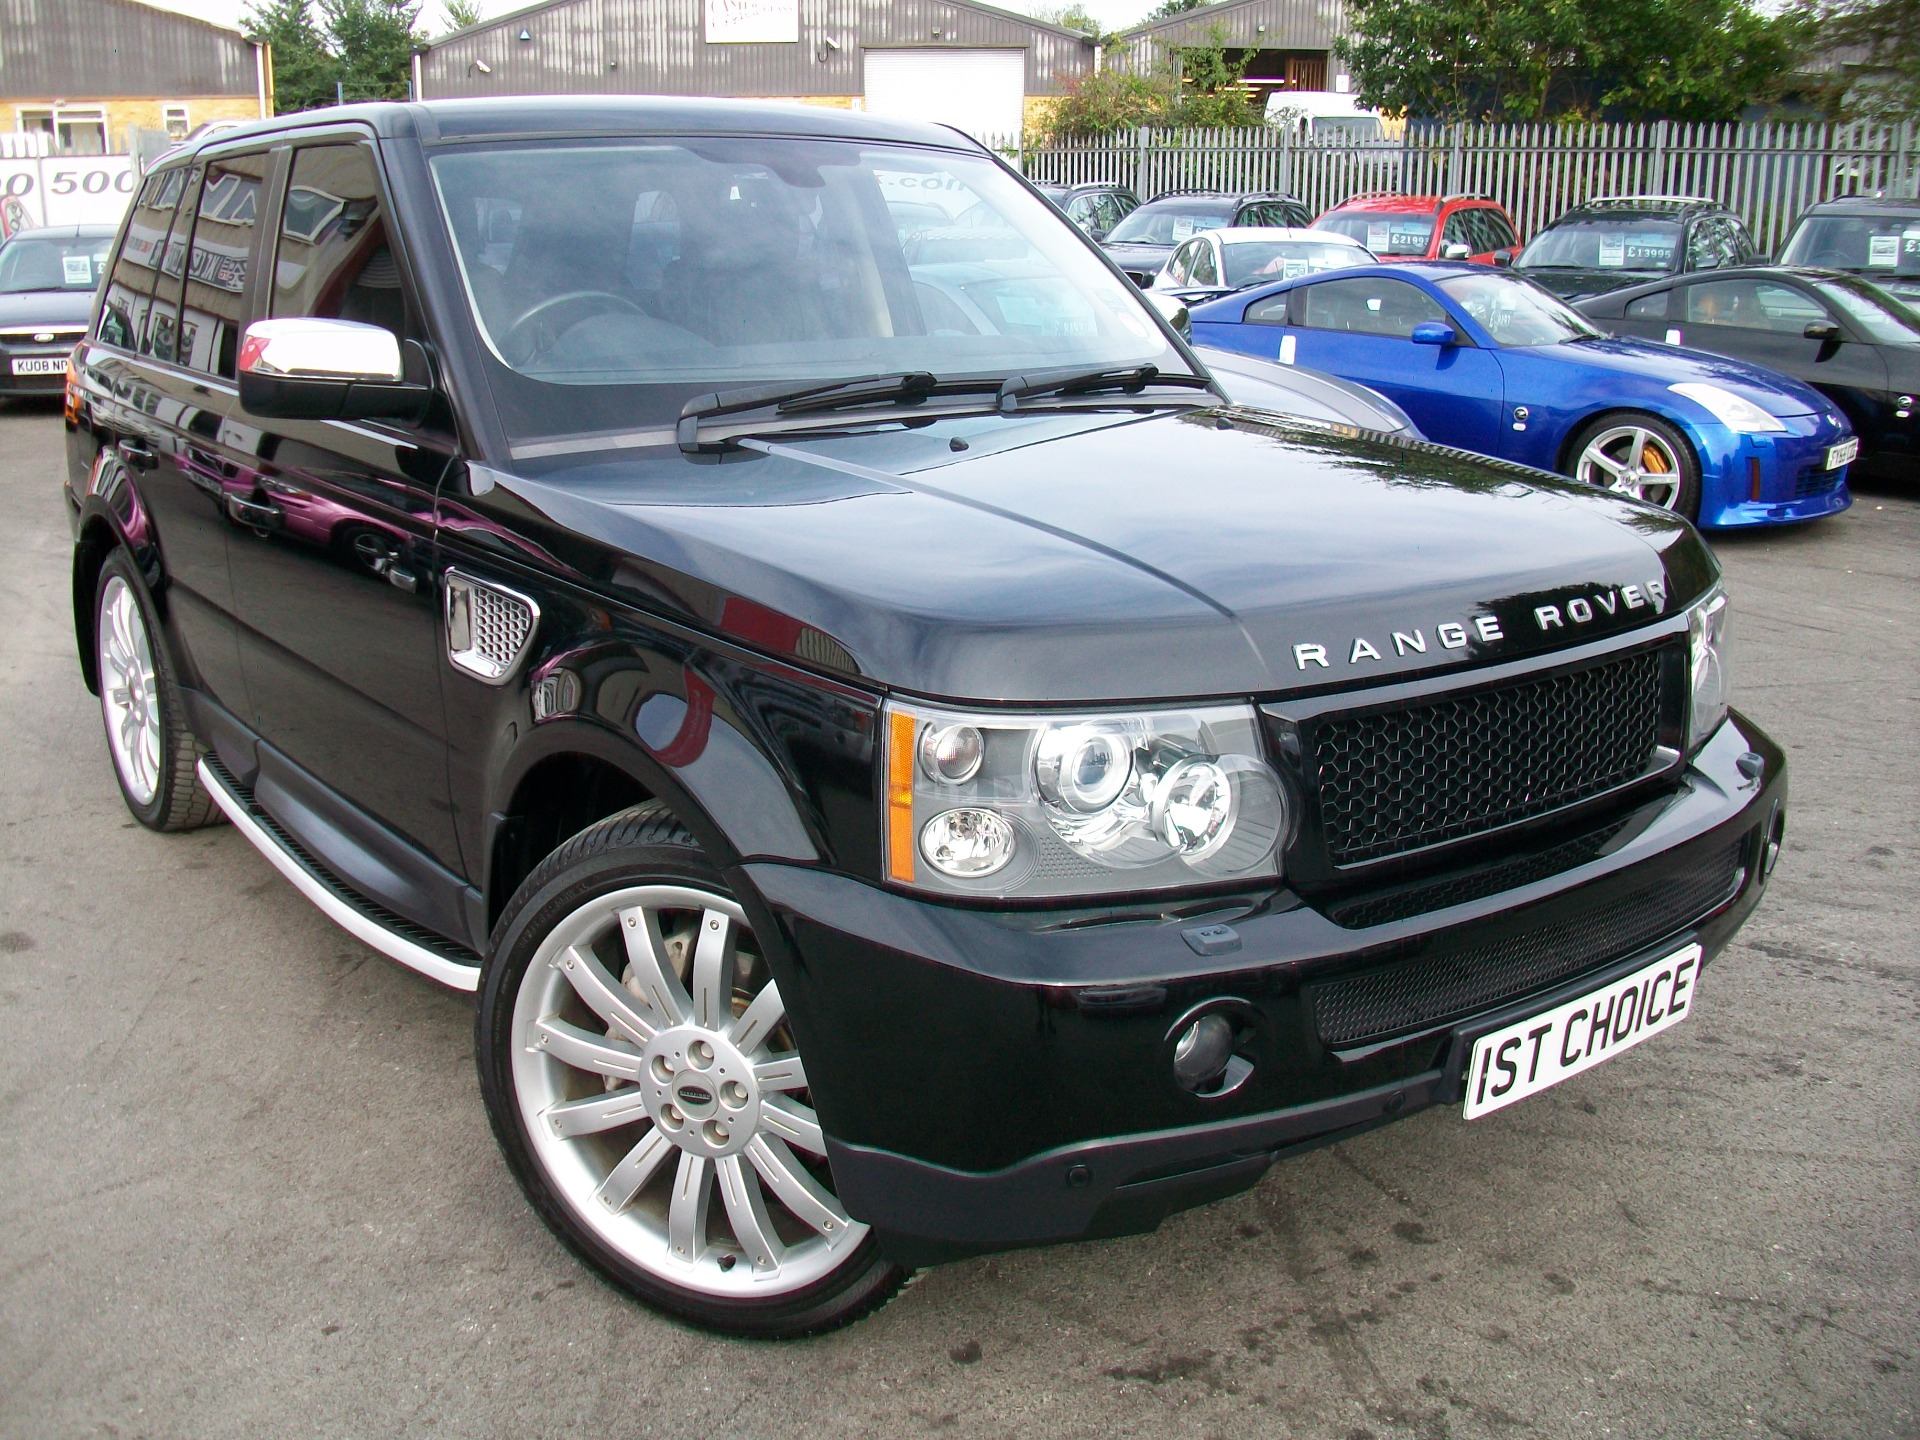 Used Range Rover Prices 39 Car Hd Wallpaper